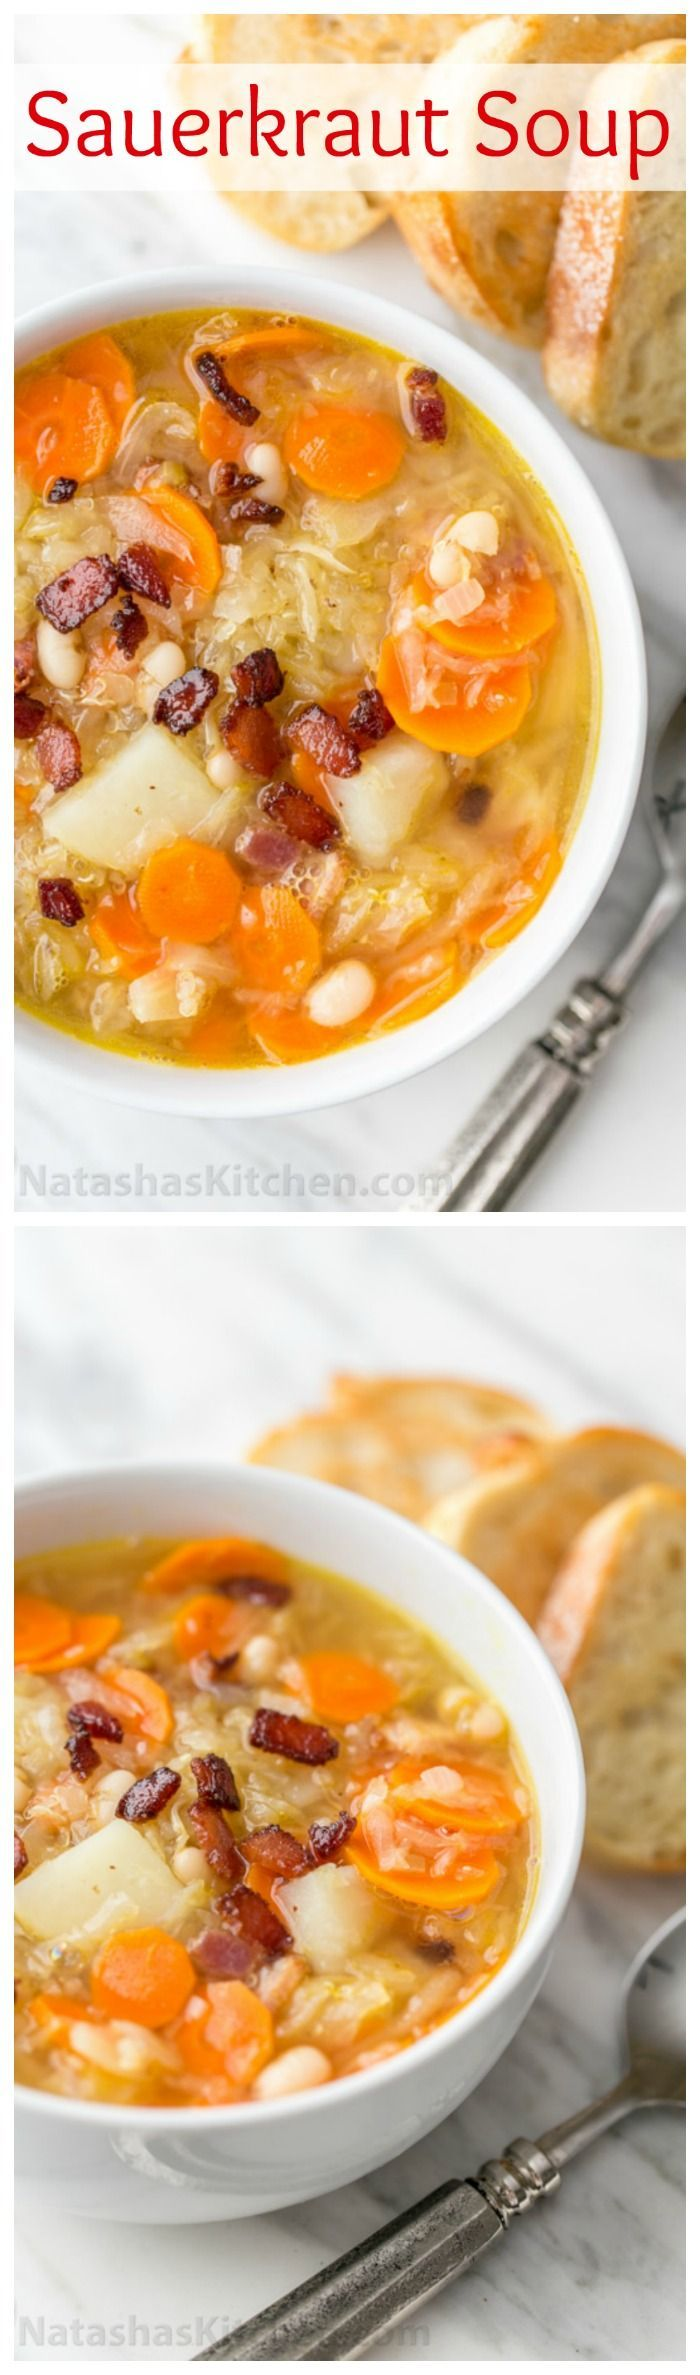 This sauerkraut soup is a most unusual and delicious soup. The sauerkraut gives it a lovely texture and zing. It's hearty, filling and will warm your belly | http://natashaskitchen.com